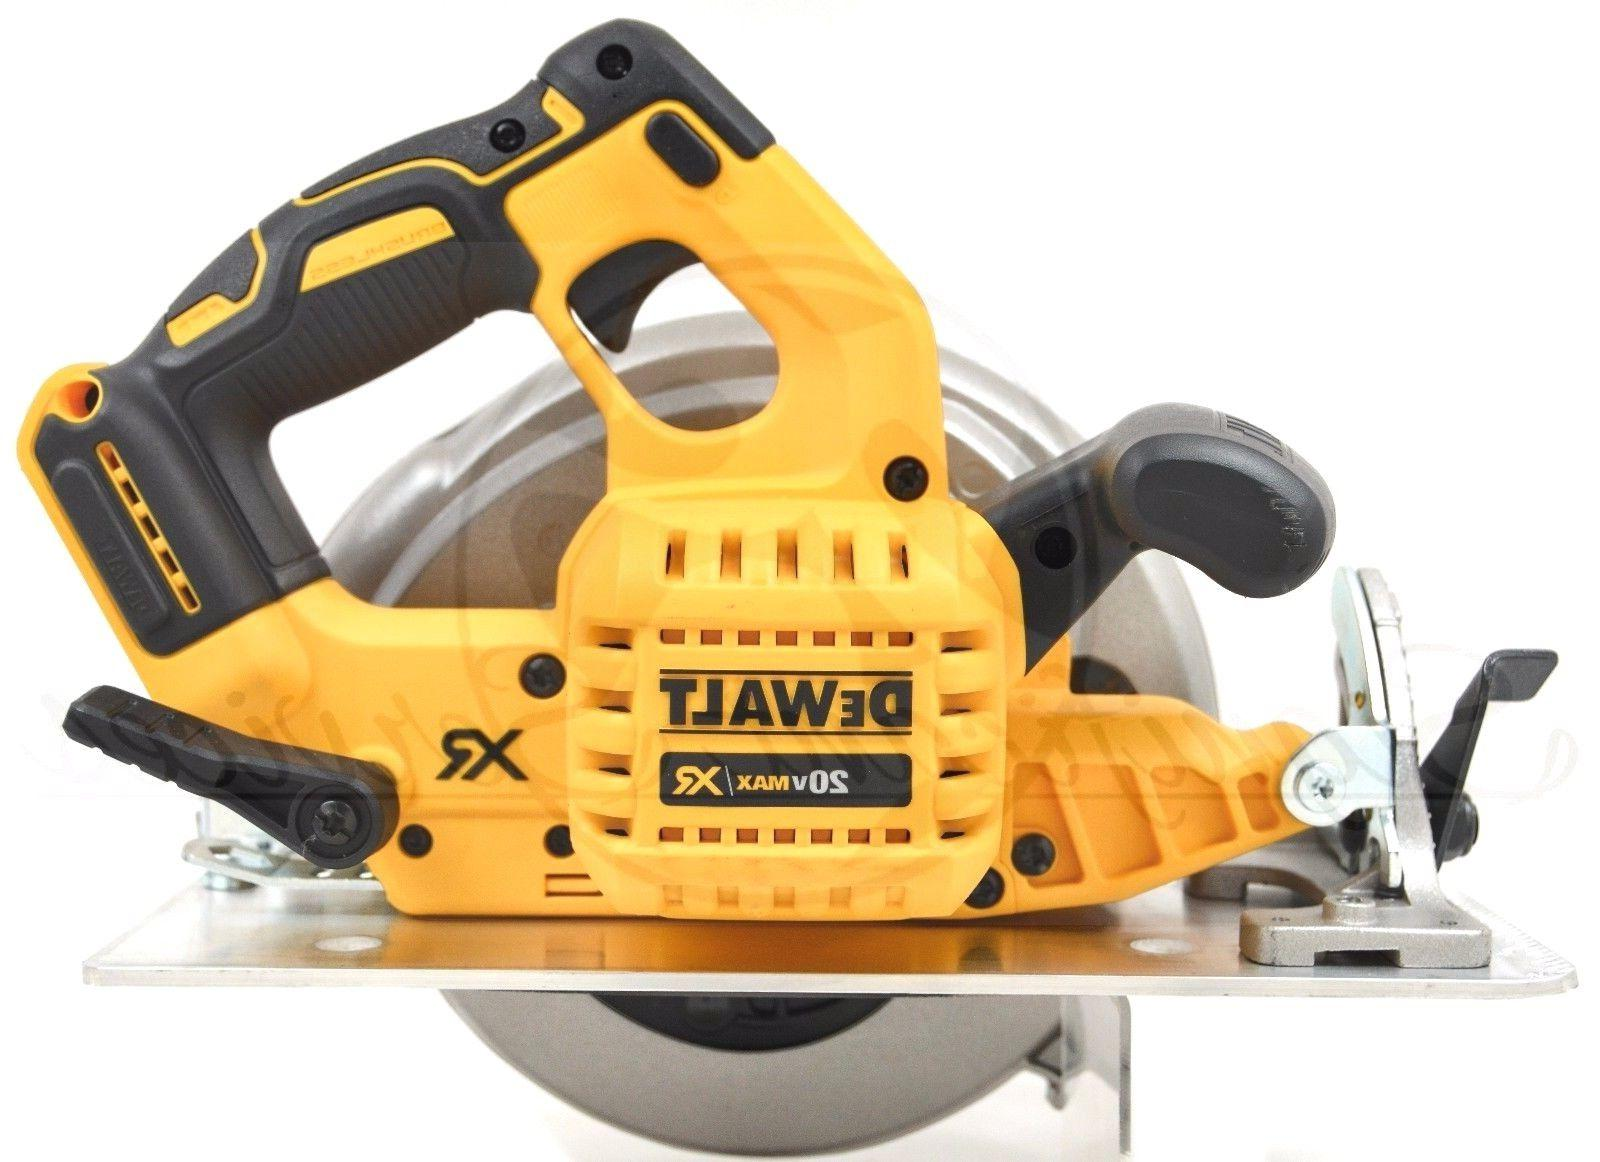 "DEWALT DCS570B 7-1/4"" MAX XR 5.0 Lithium Ion Saw Kit"